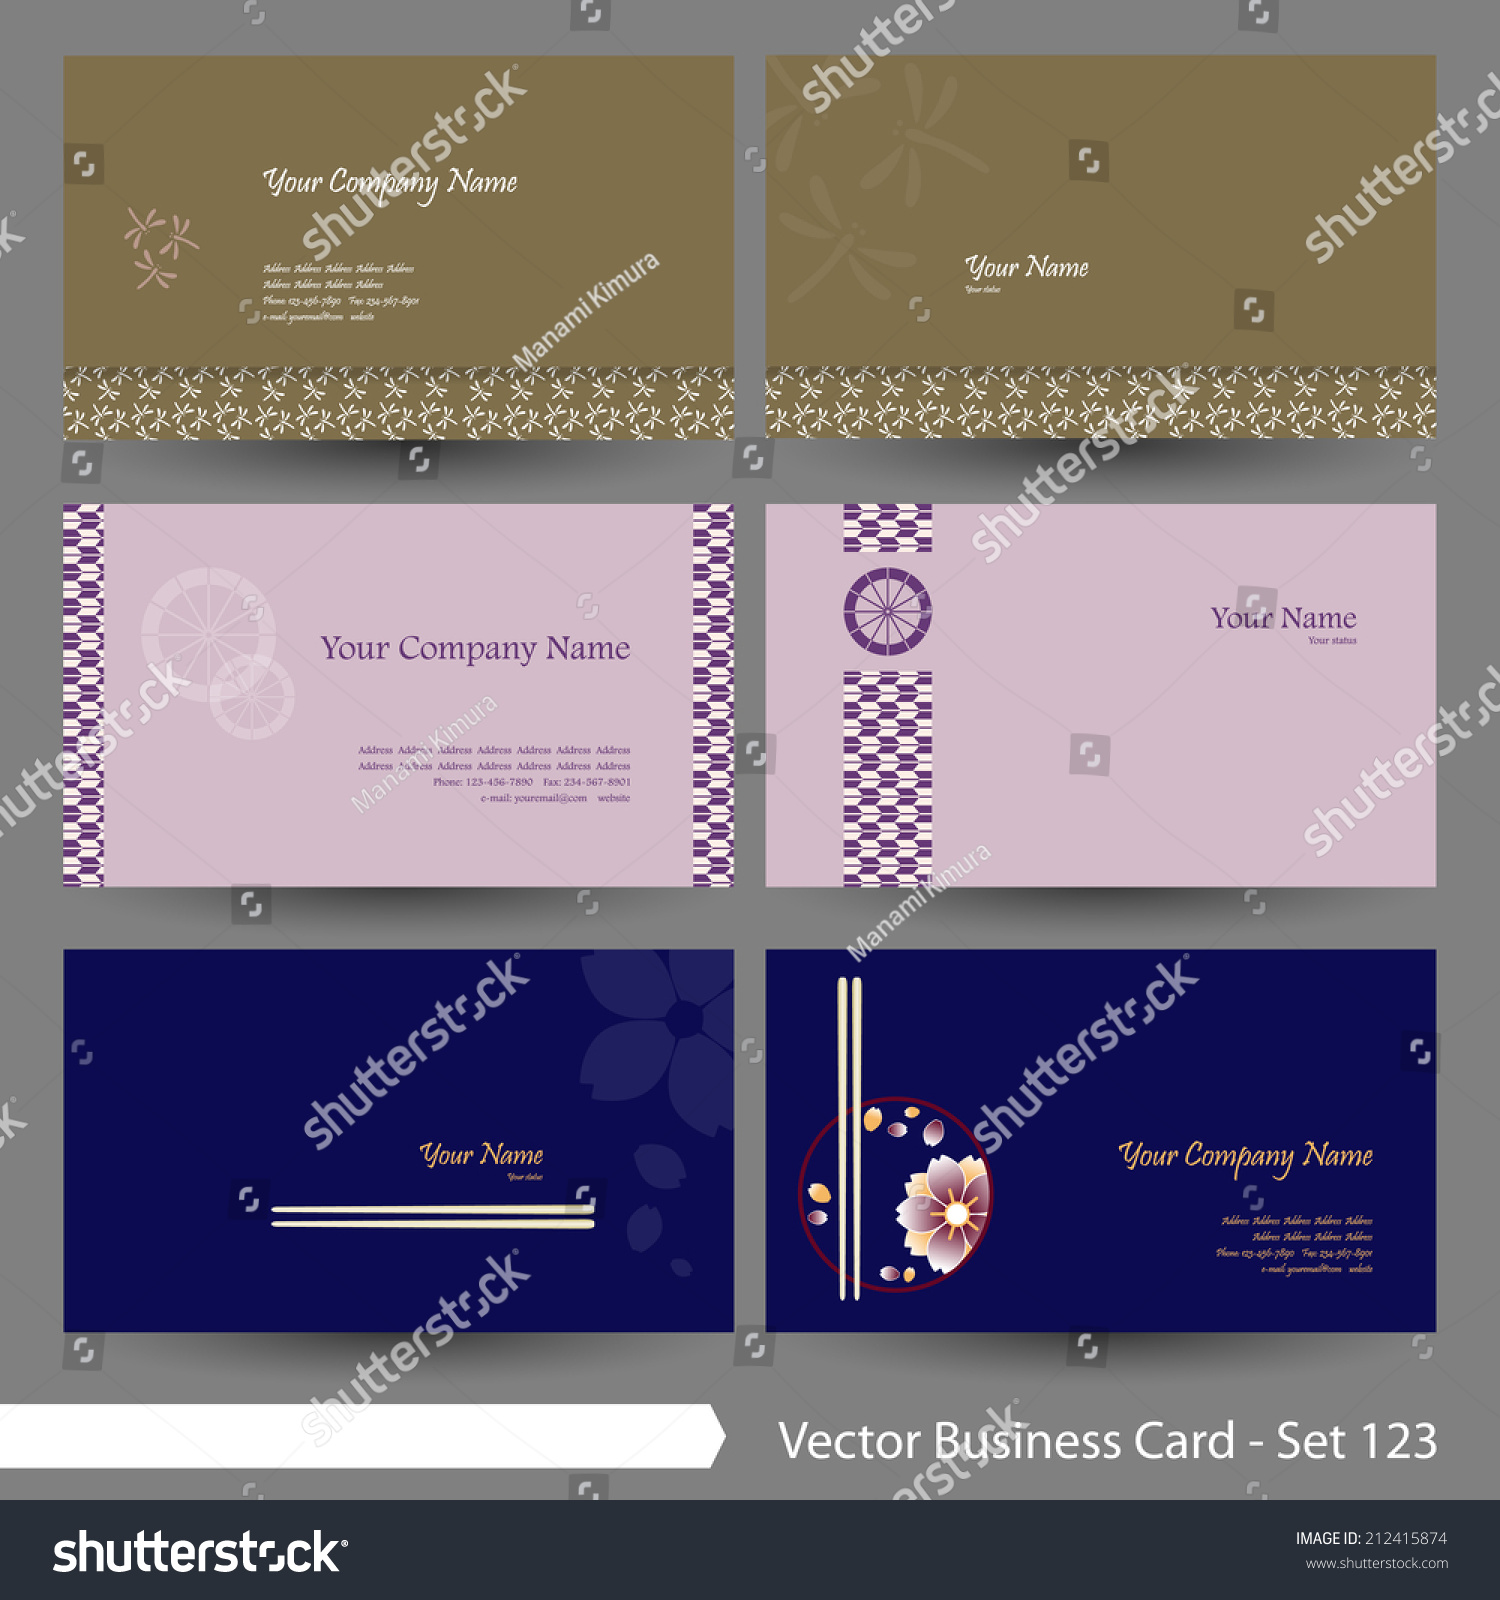 Lovely Pictures Of Japanese Business Card - Business Cards and ...